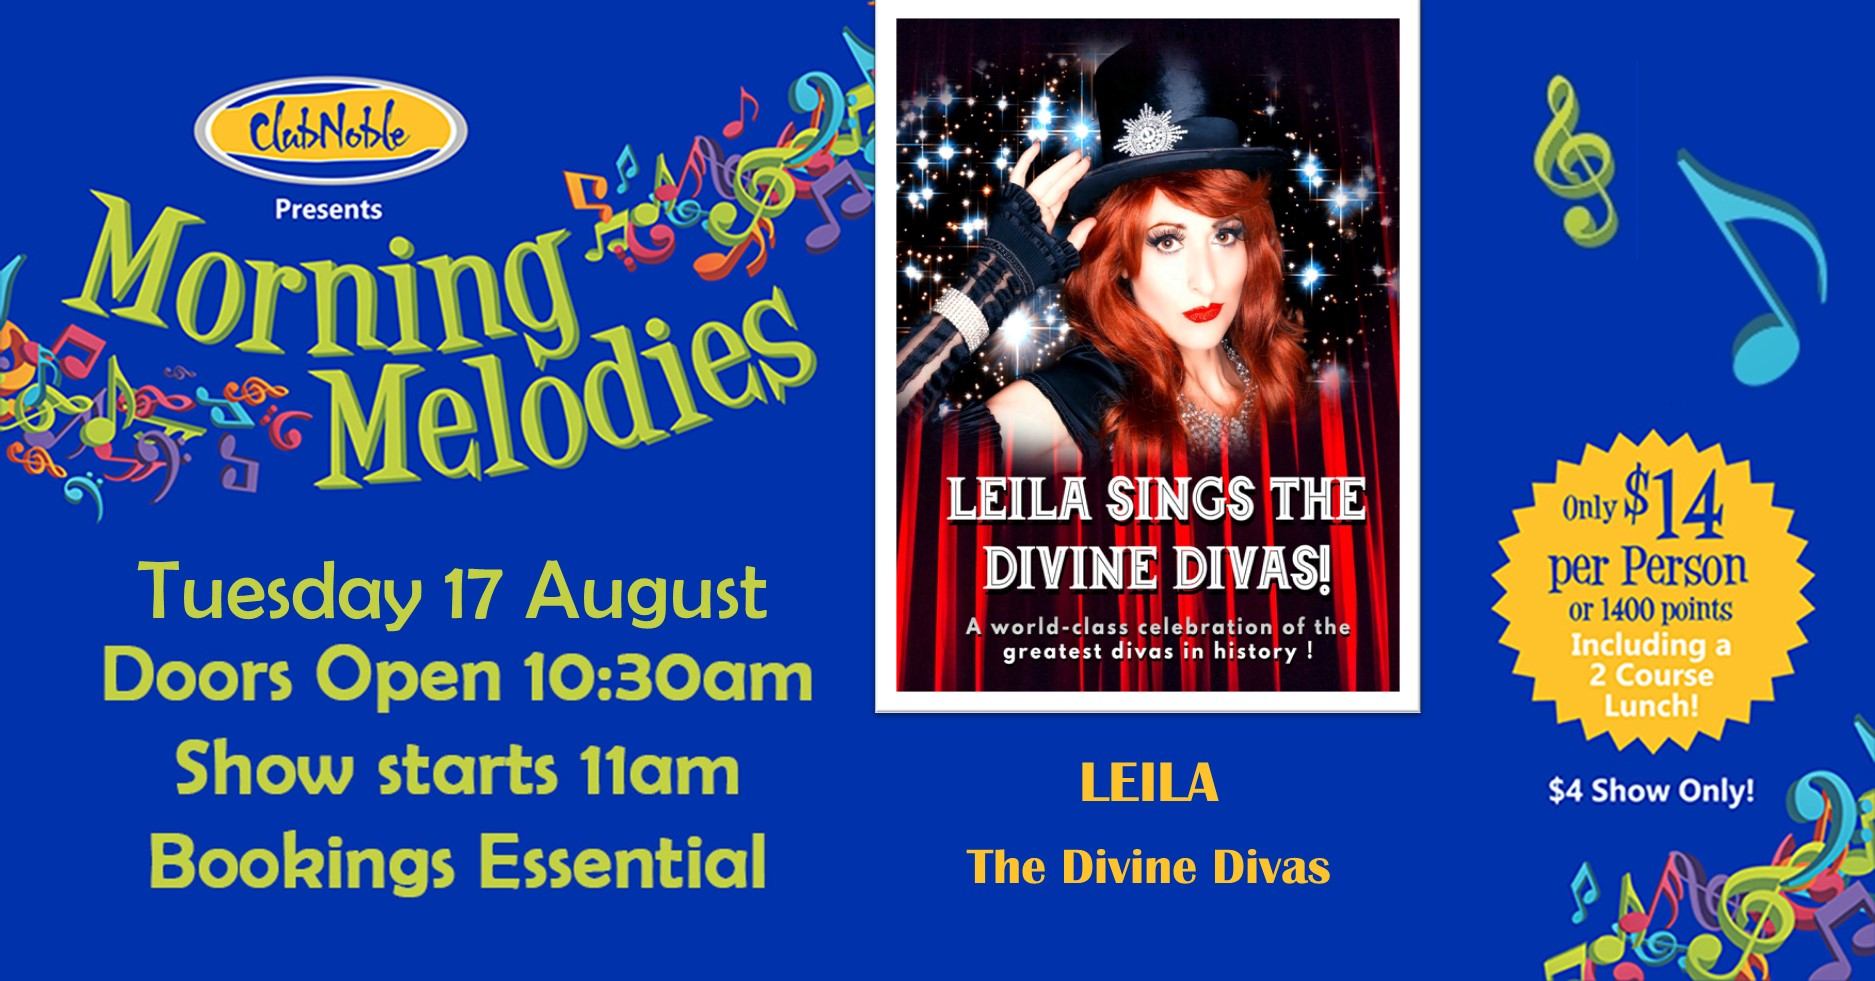 Morning Melodies with Leila